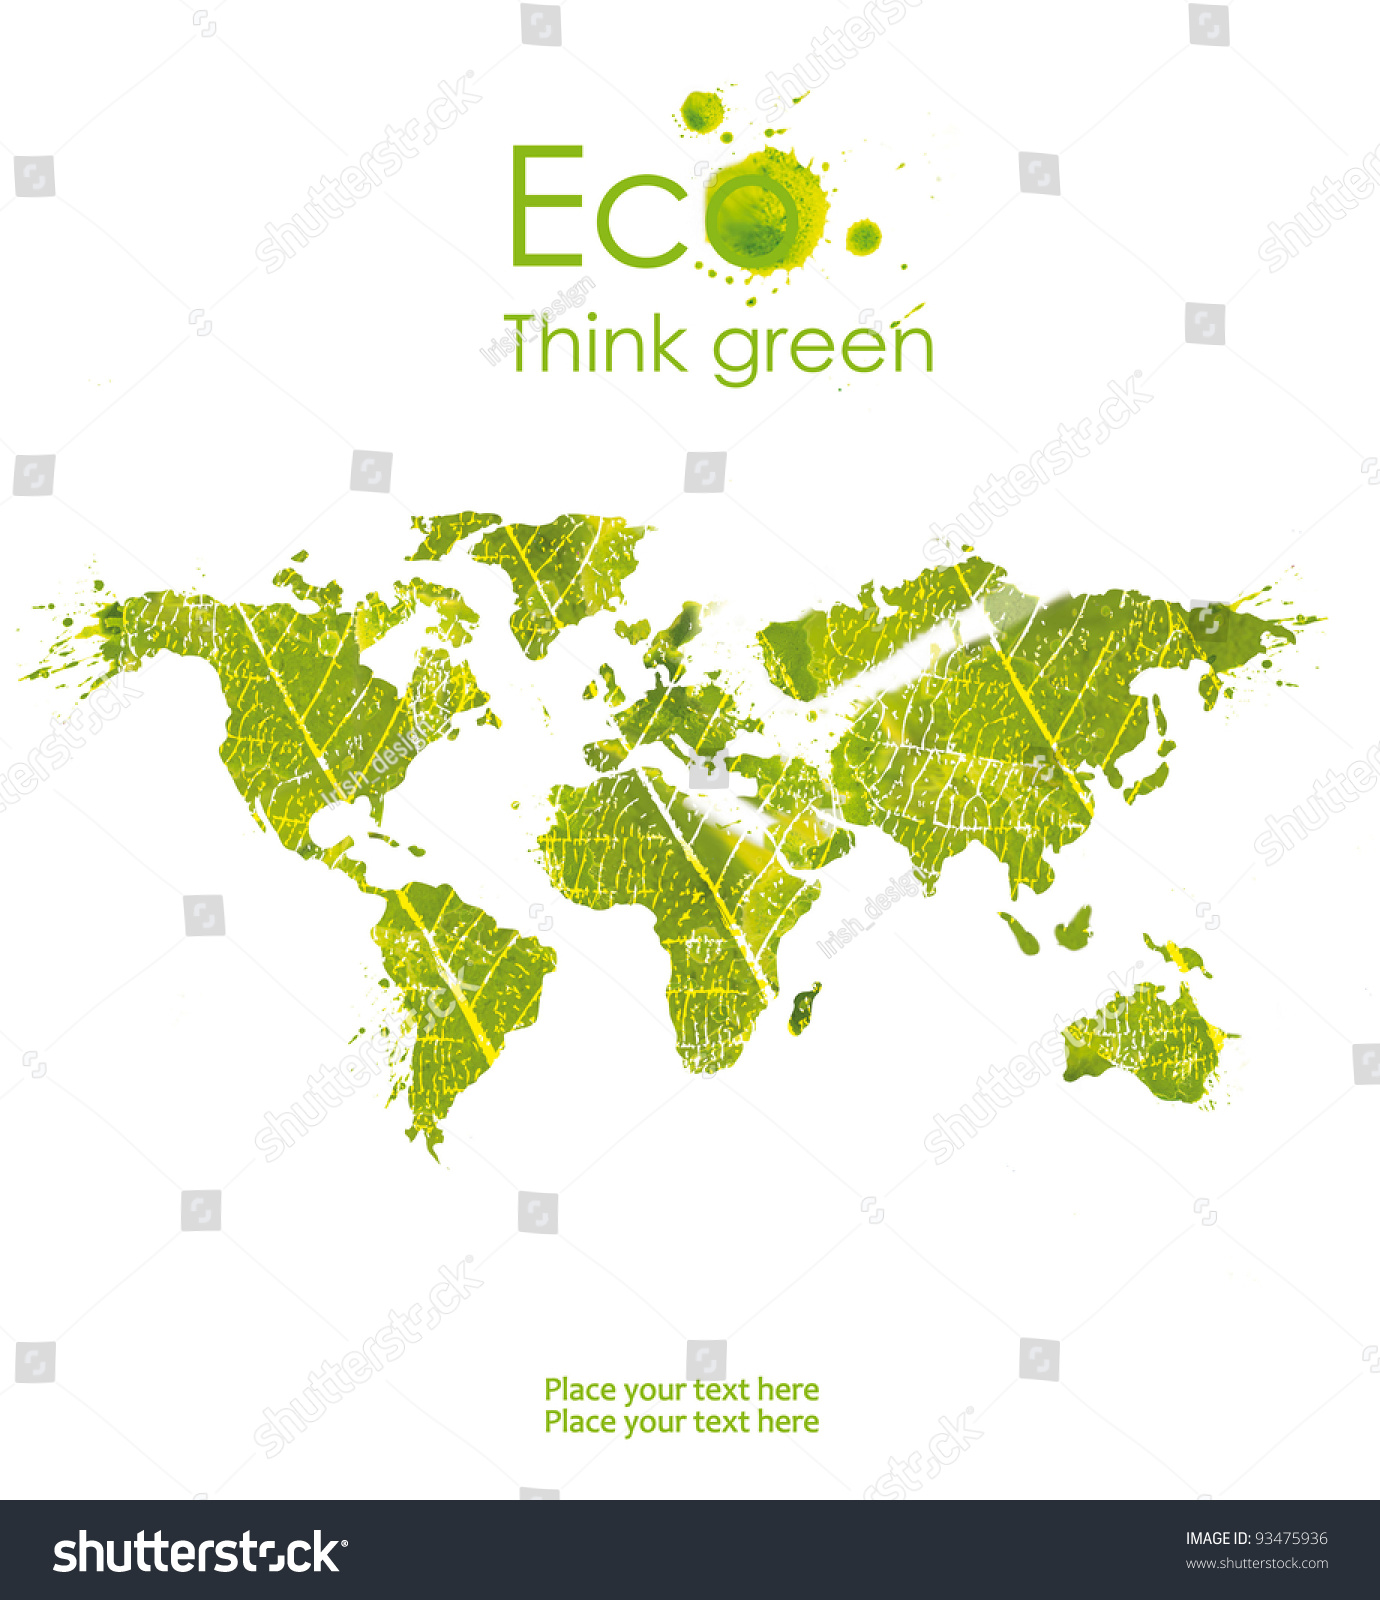 ecological map symbolizes the protection of the environment isolated onwhite background think green. ecological map symbolizes protection environment isolated stock